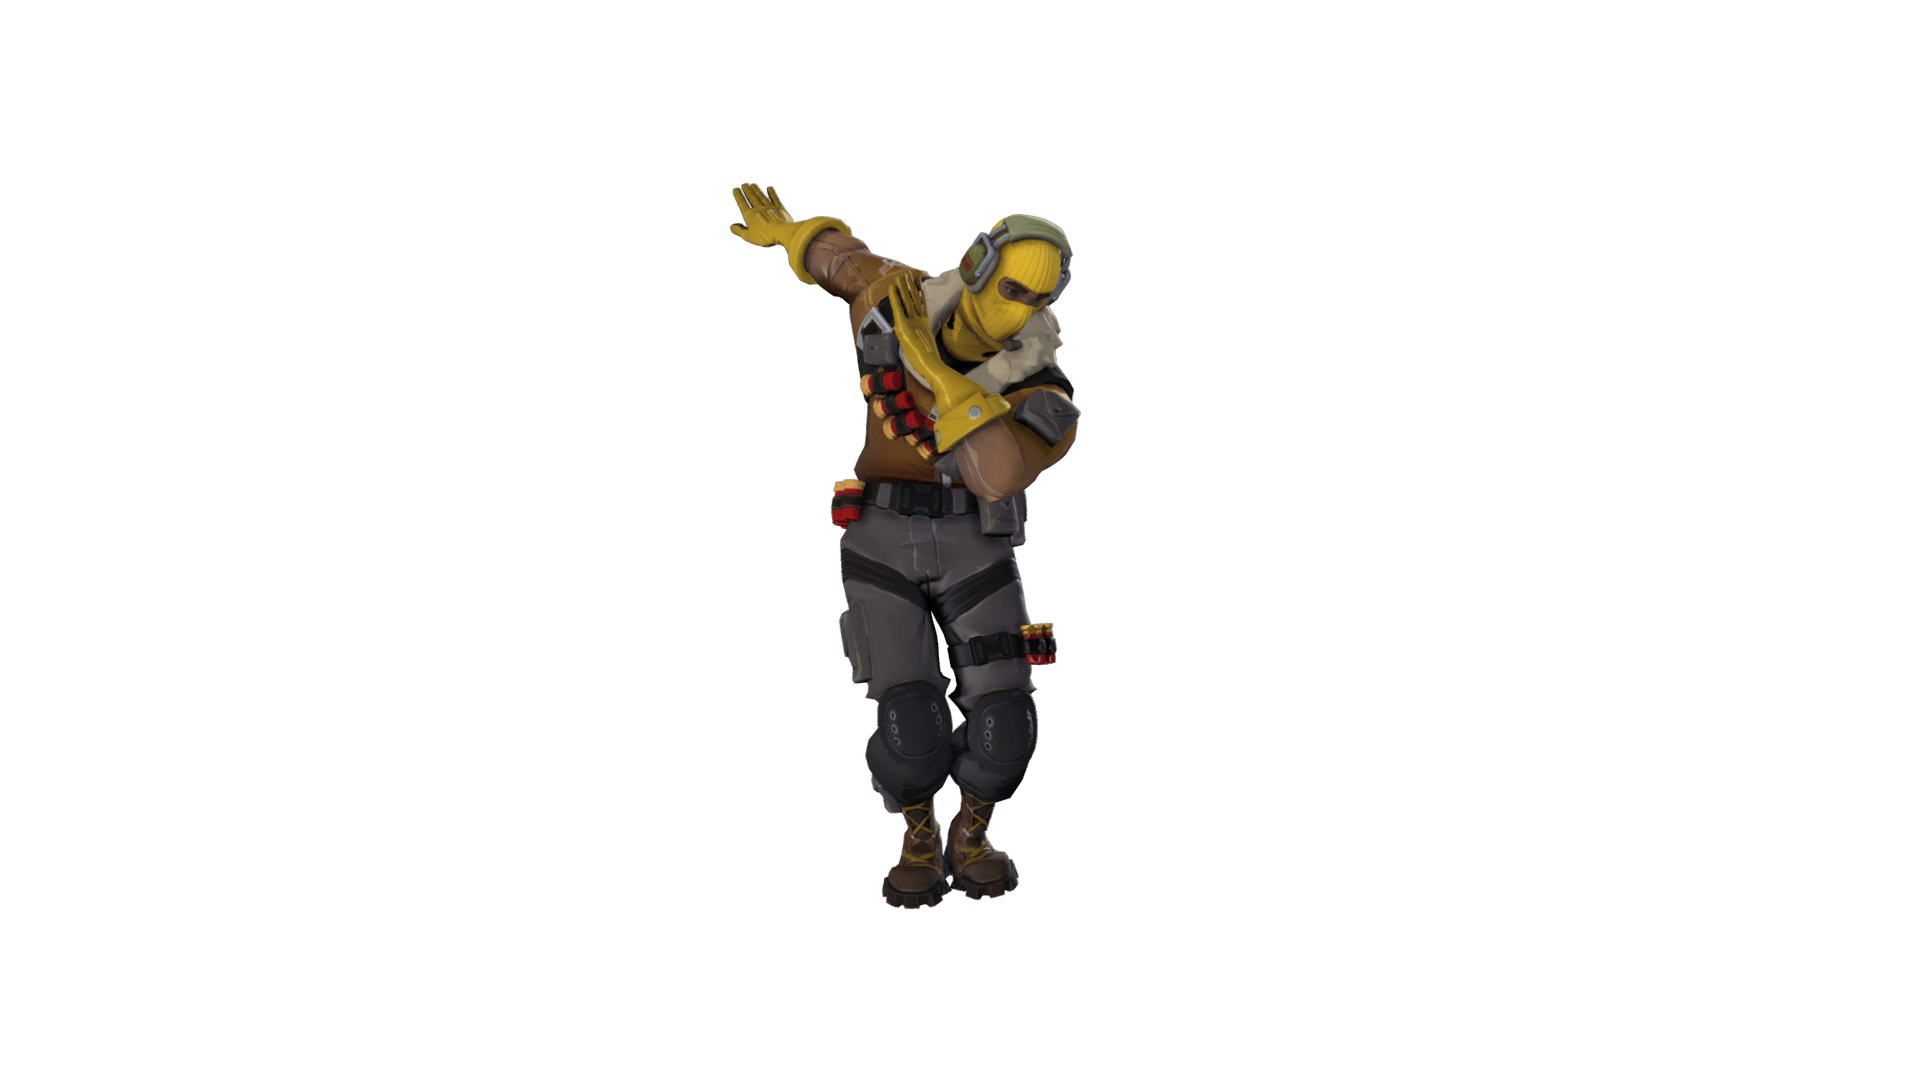 png images - infinite dab fortnite 10 hours